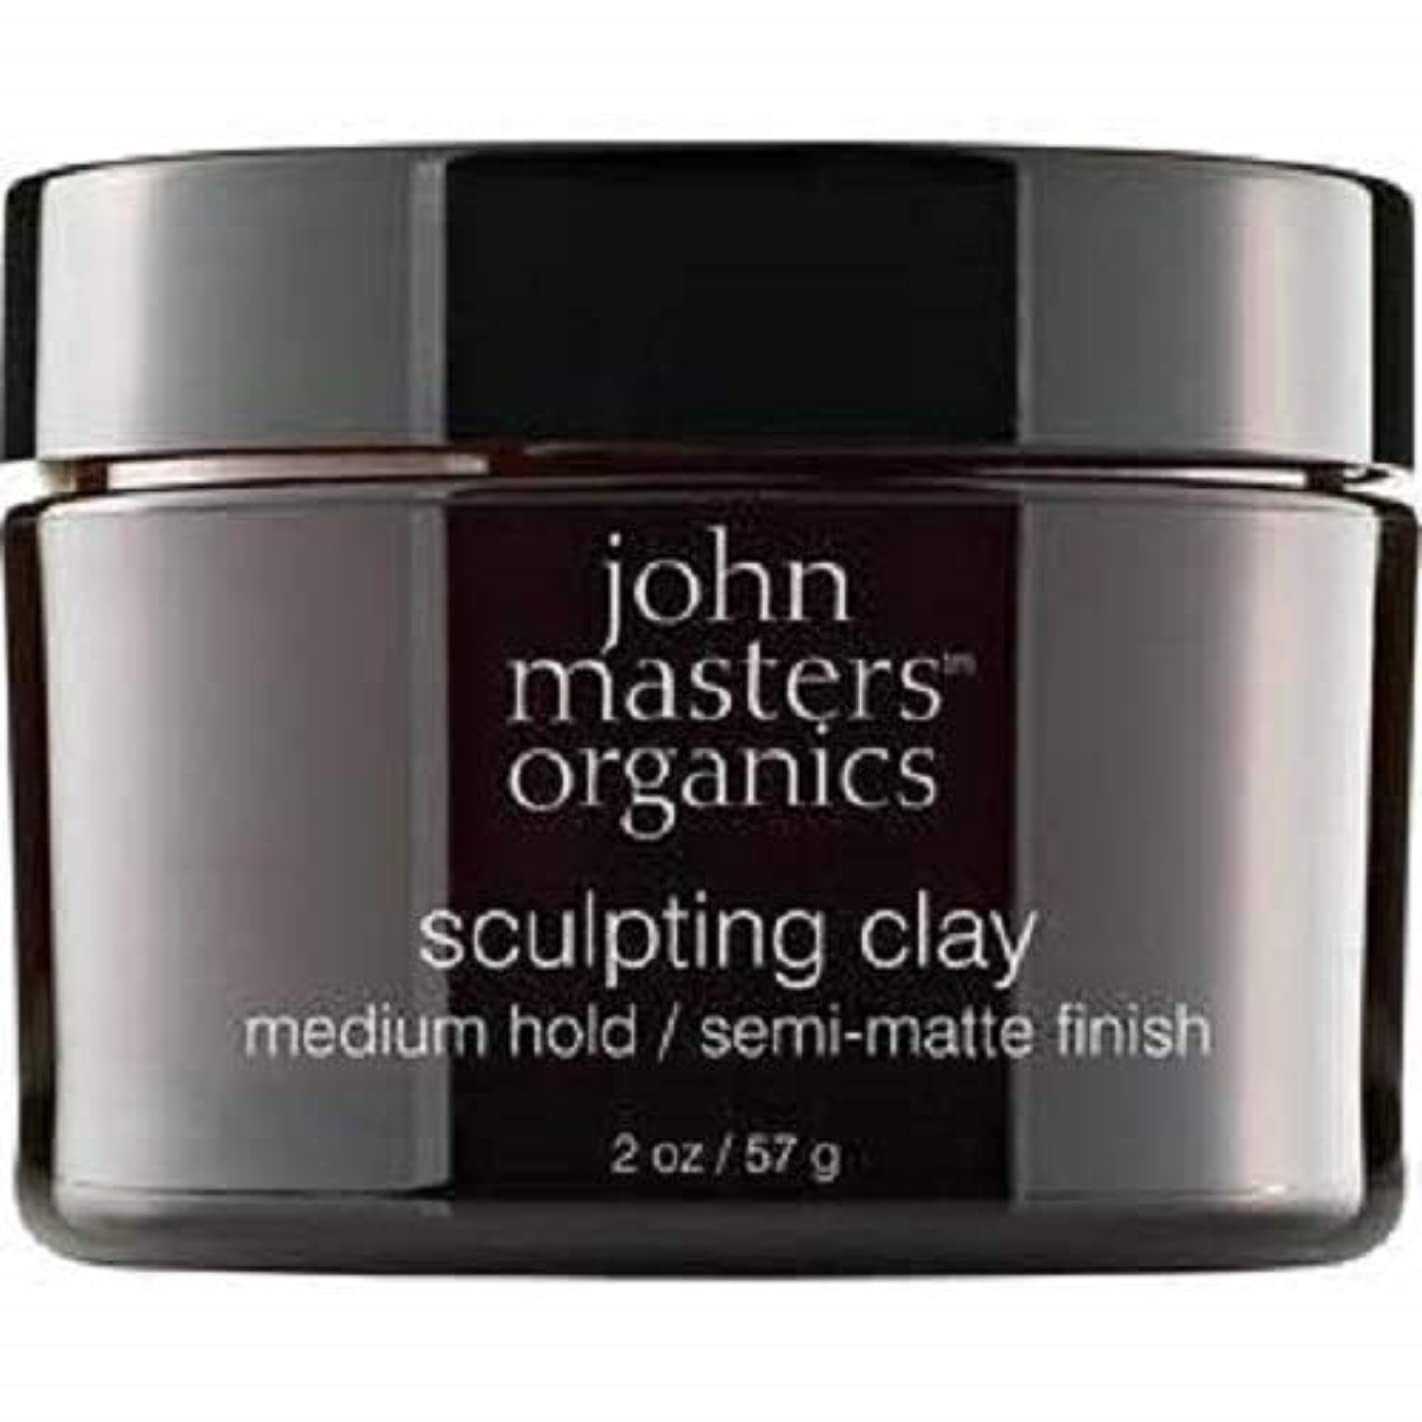 サーキュレーション実質的愛国的なJohn Masters Organics Sculpting Clay medium hold / semi-matt finish 2 OZ,57 g